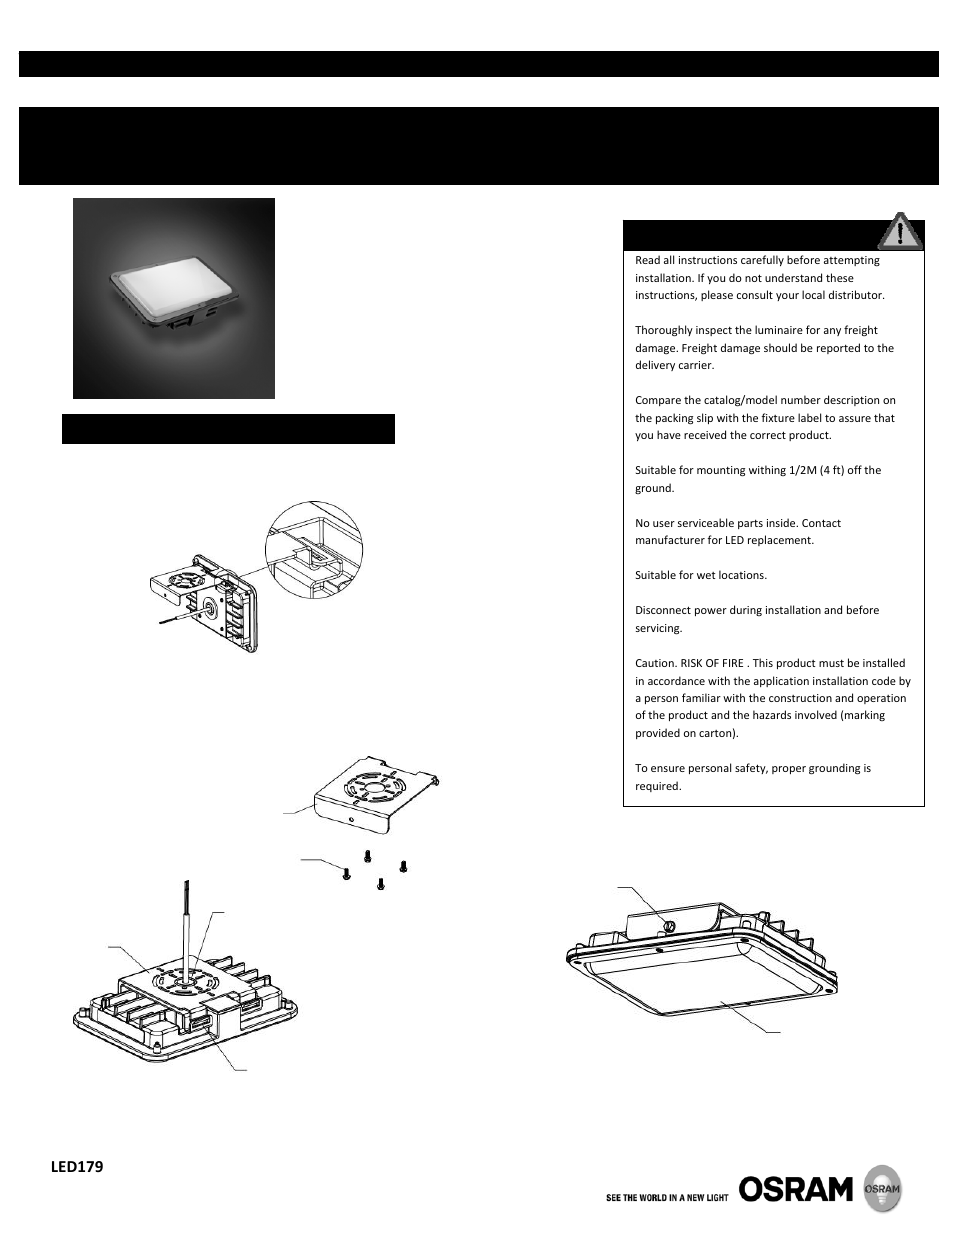 Osram Sylvania Propoint Outdoor Luminaire Small Light Pack User Junction Box Wiring Manual 2 Pages